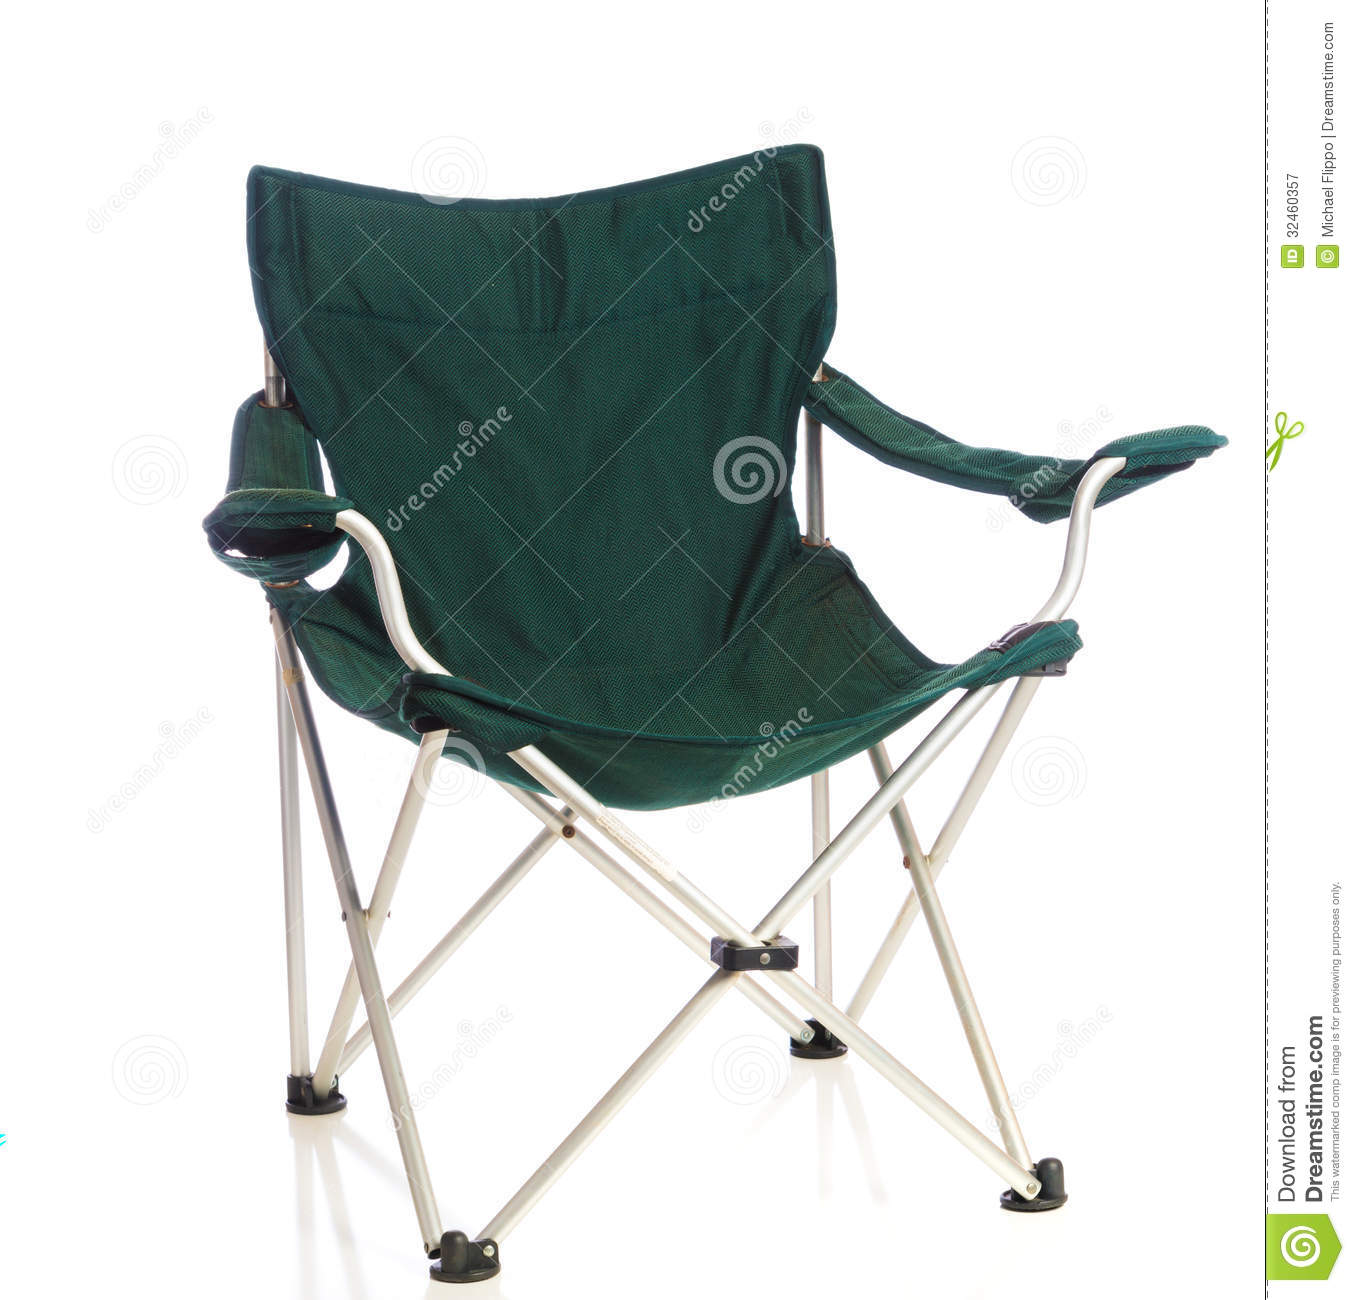 Green Folding Lawn Chair White Royalty Free Stock graphy Image 324